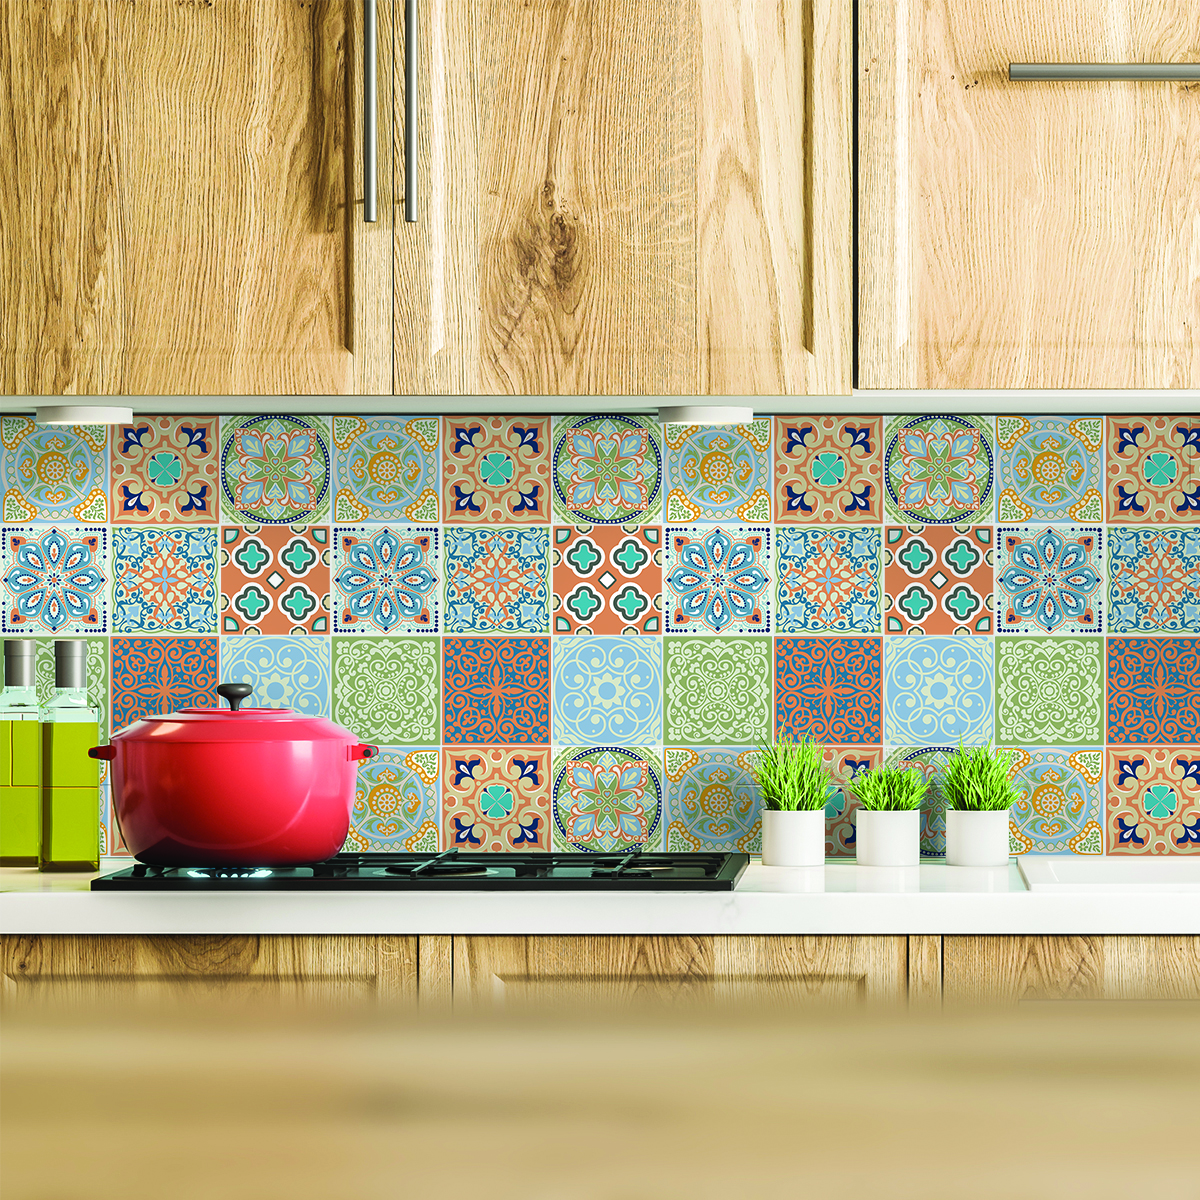 Stickers Carrelage Cuisine: 9 Stickers Carrelages Azulejos Scotino